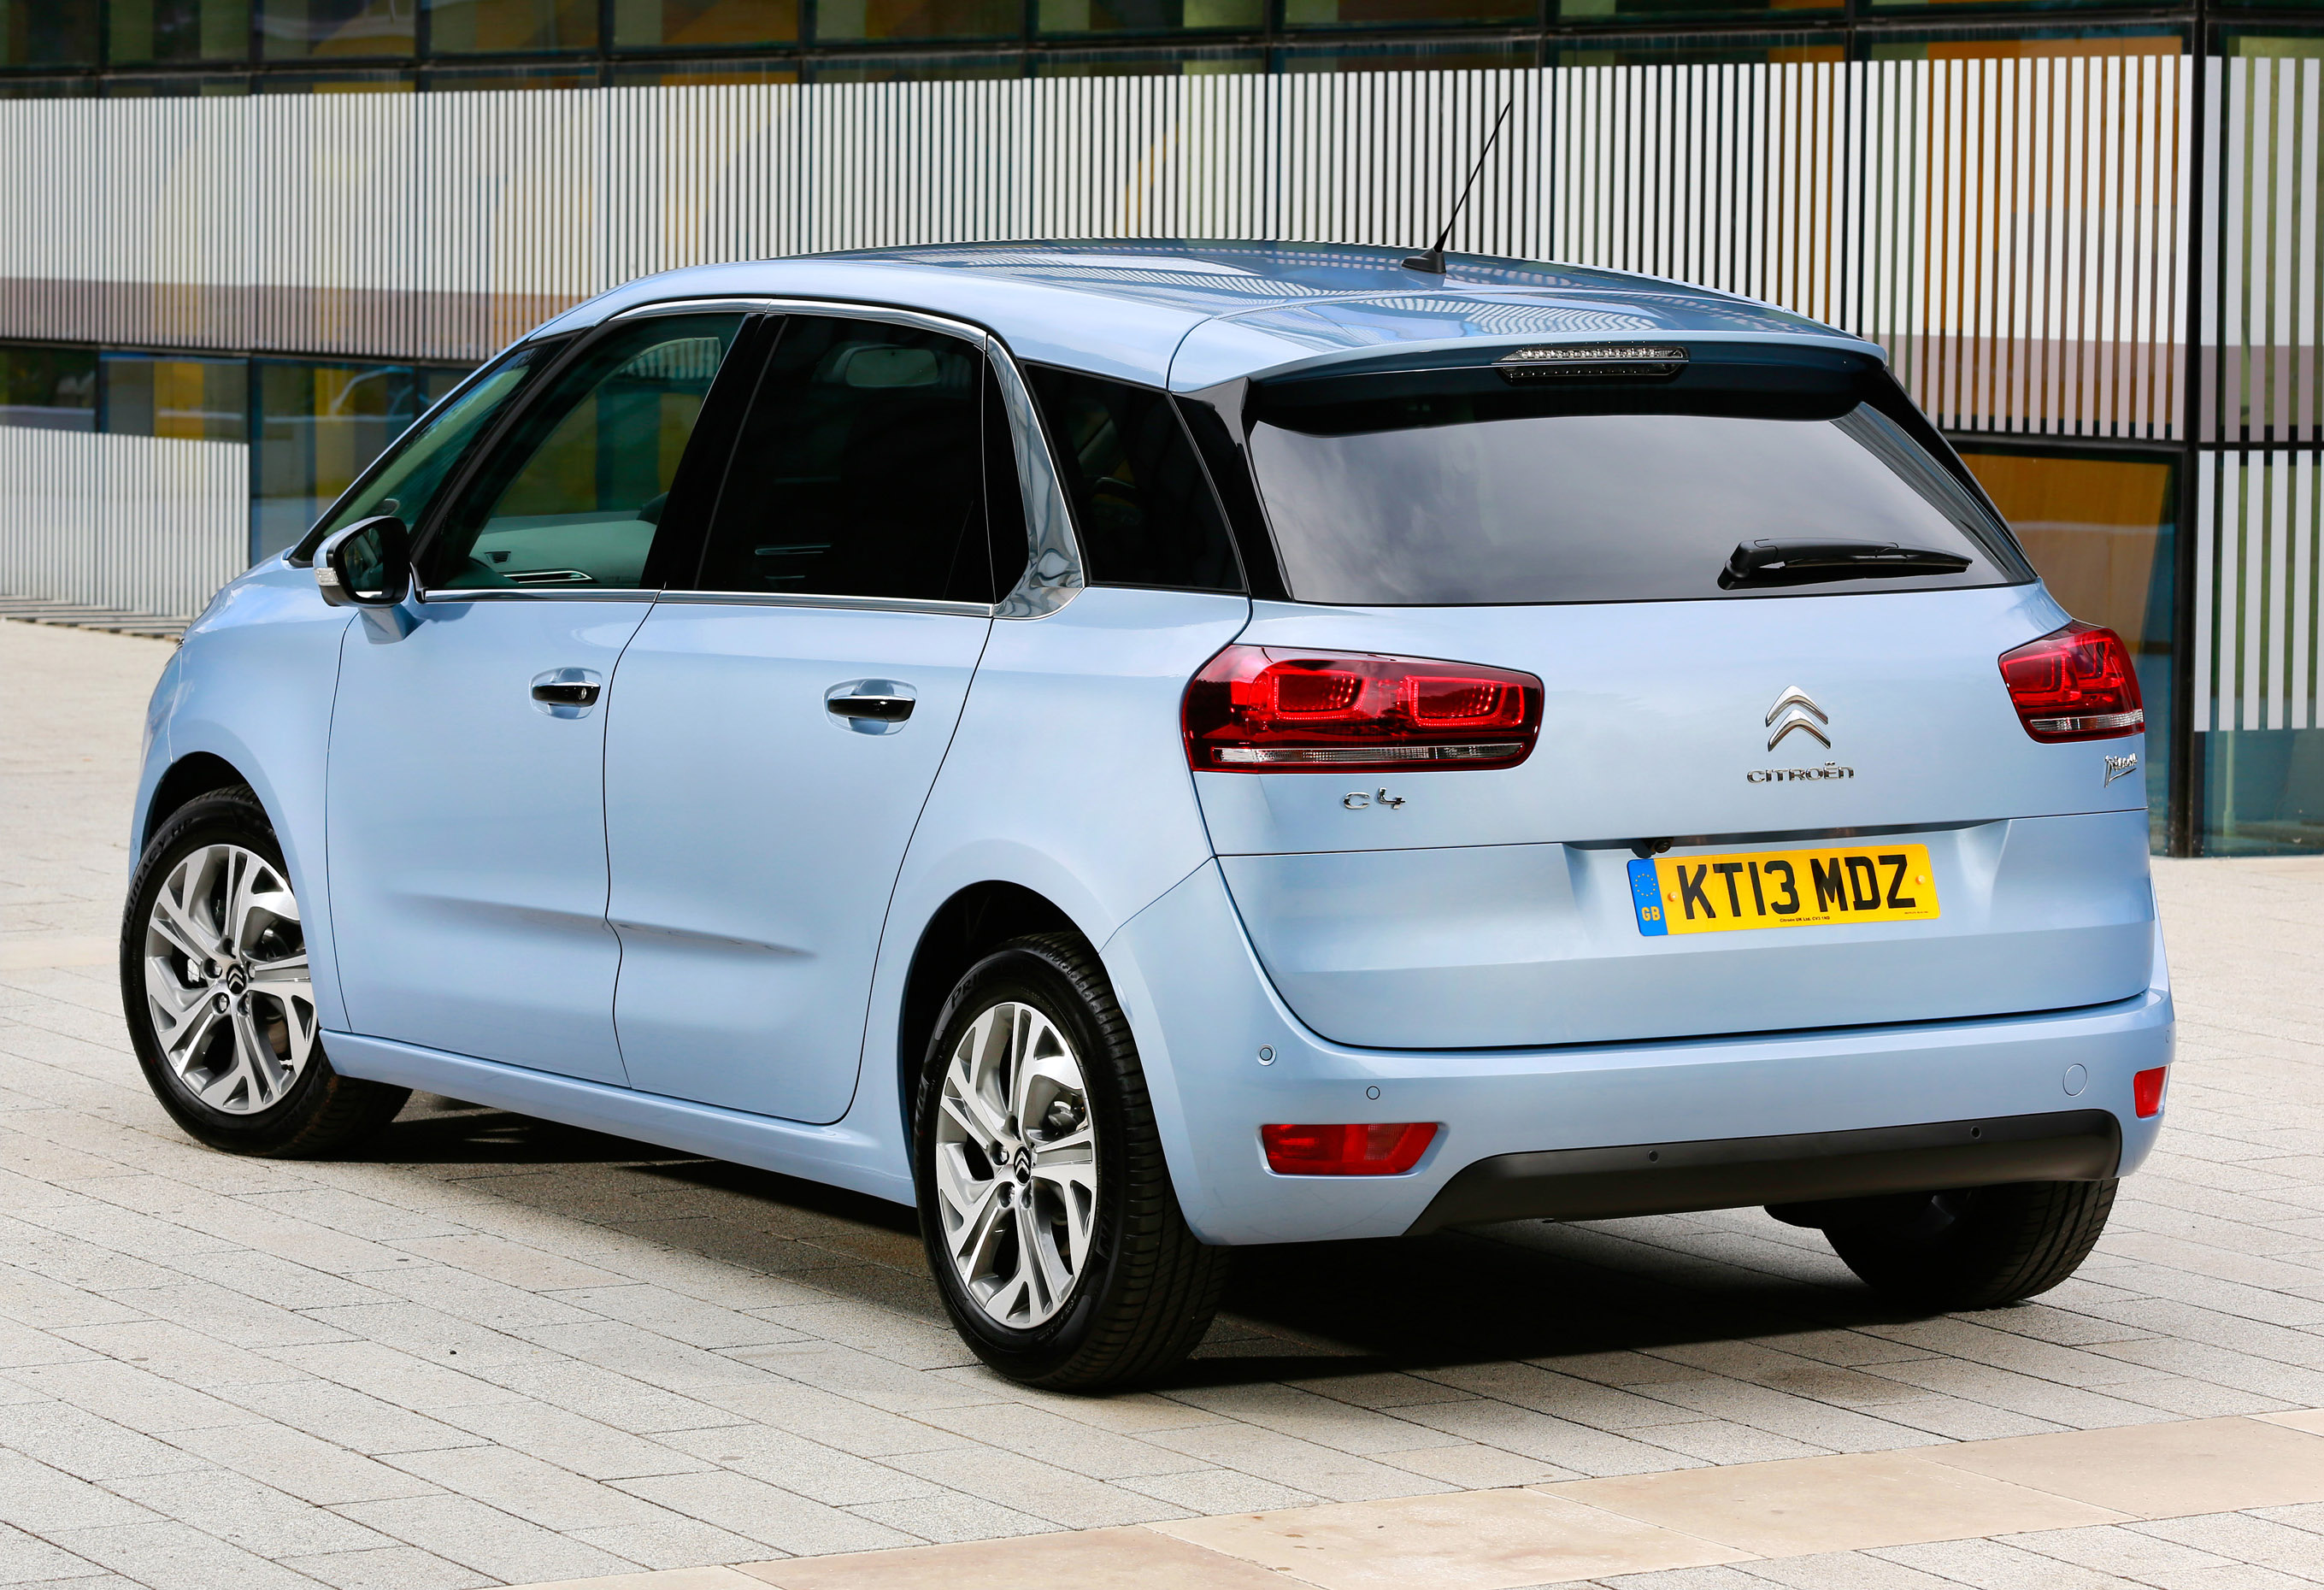 2014 Citroen C4 Picasso An Innovative Mpv